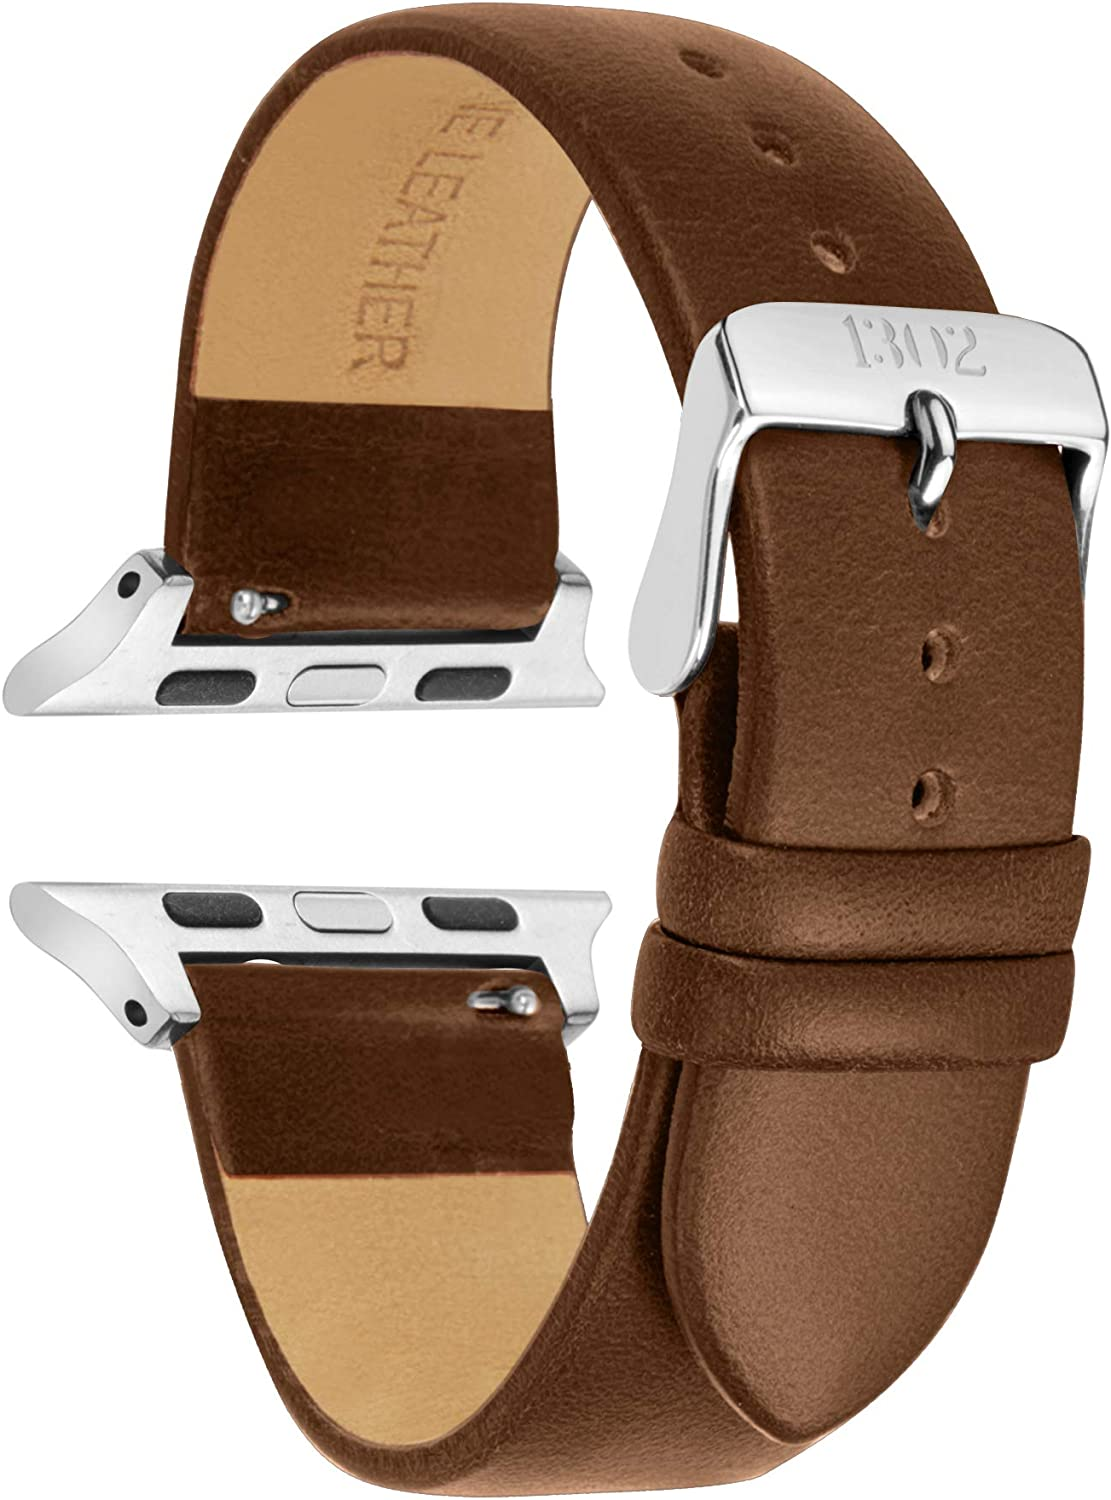 Compatible with Silver Apple Watch Band 38mm - Leather Apple Watch Band 38mm - Leather Apple Watch Band 42mm Men - Leather iwatch Band 38mm - 42mm Apple Watch Band (Walnut, 42mm/44mm)